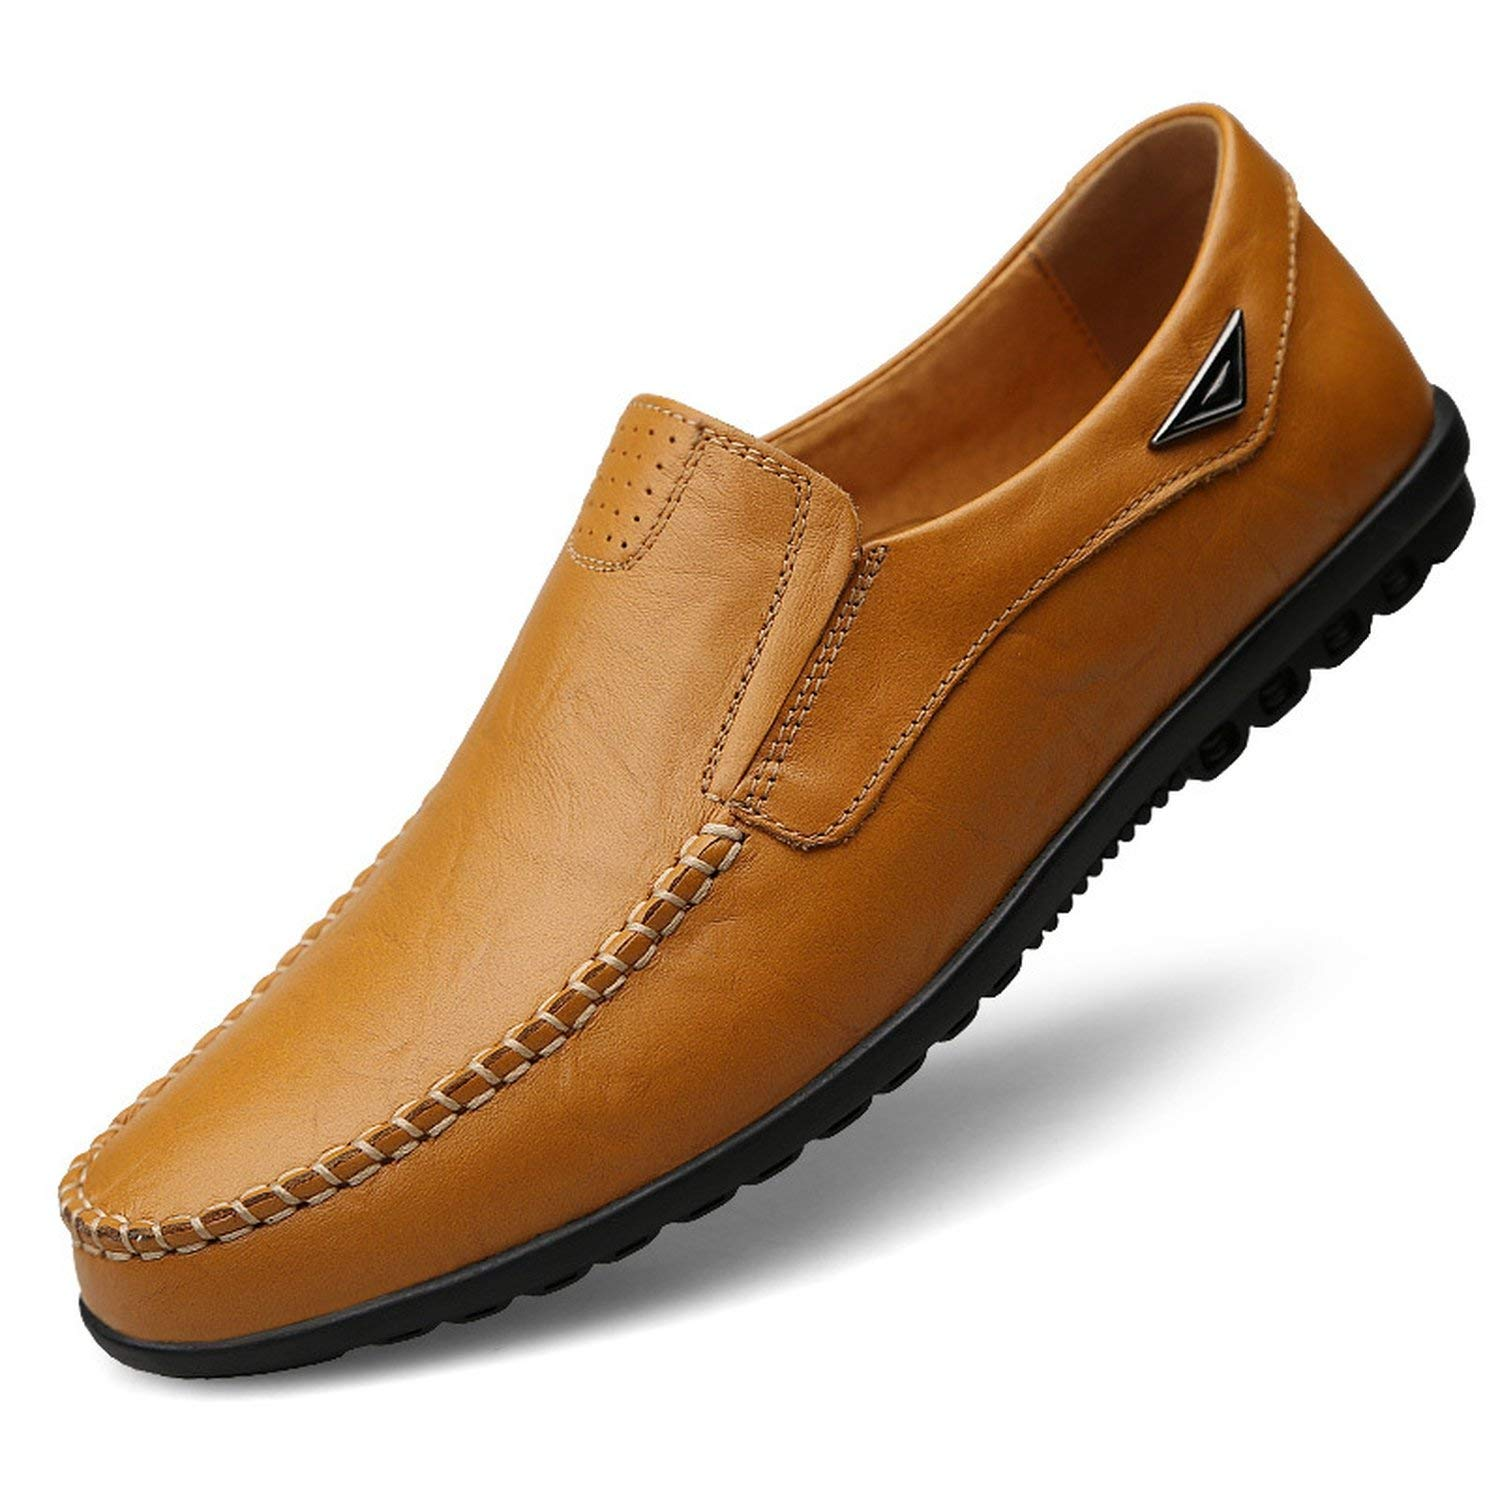 Jade clear Genuine Leather Mens Moccasin Shoes Black Men Flats Breathable Casual Italian Loafers Comfortable Plus Size 37-47 Driving Shoes,Yellow Brown,8